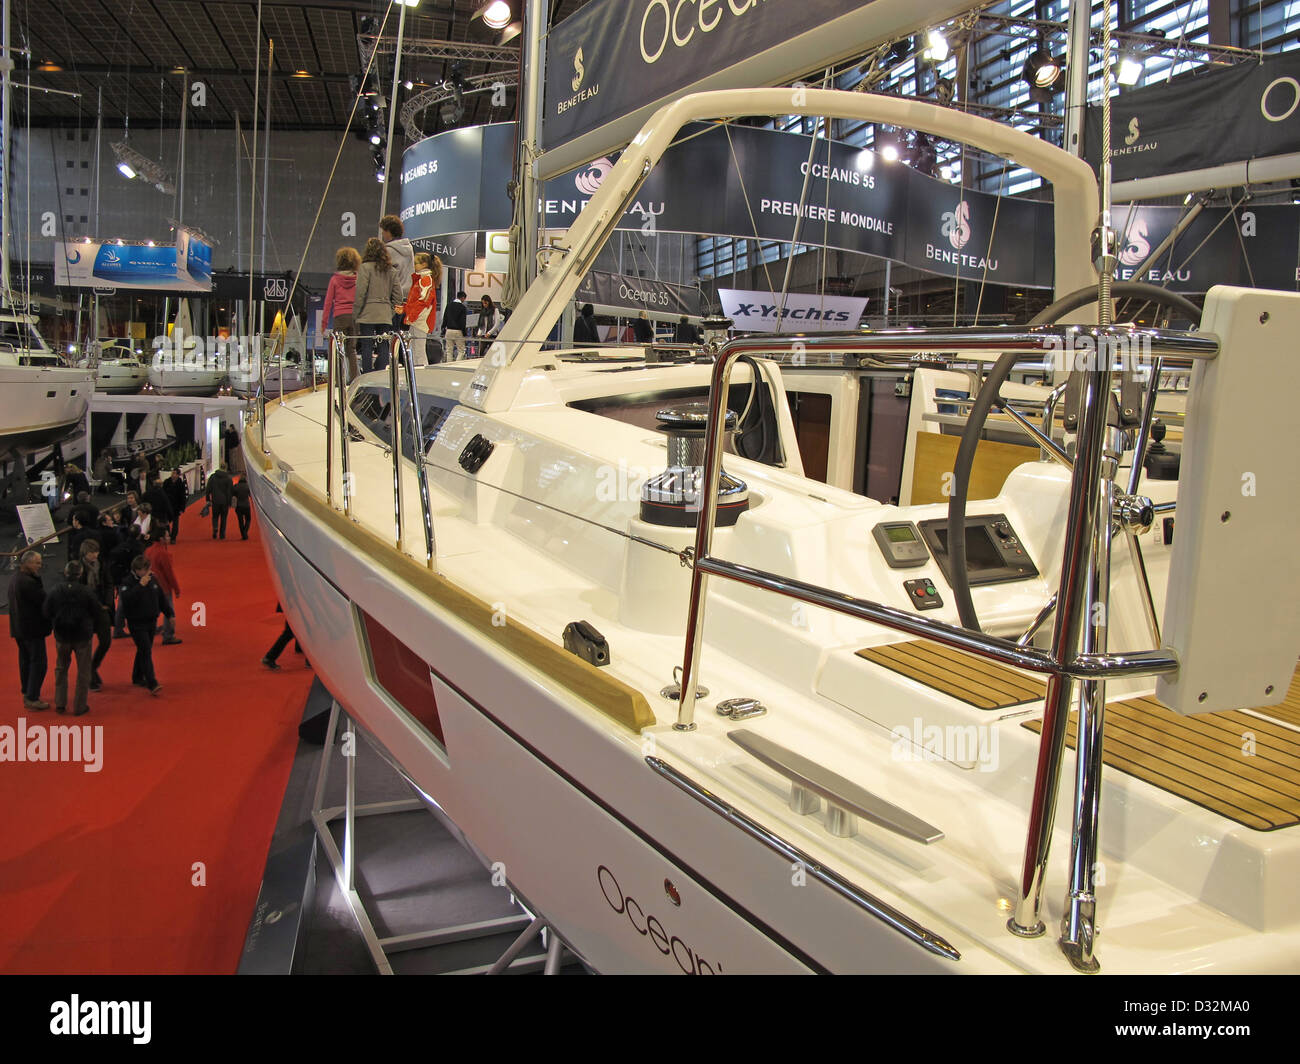 Salon Nautique International De Paris Salon Nautique International De Paris International Boat Show